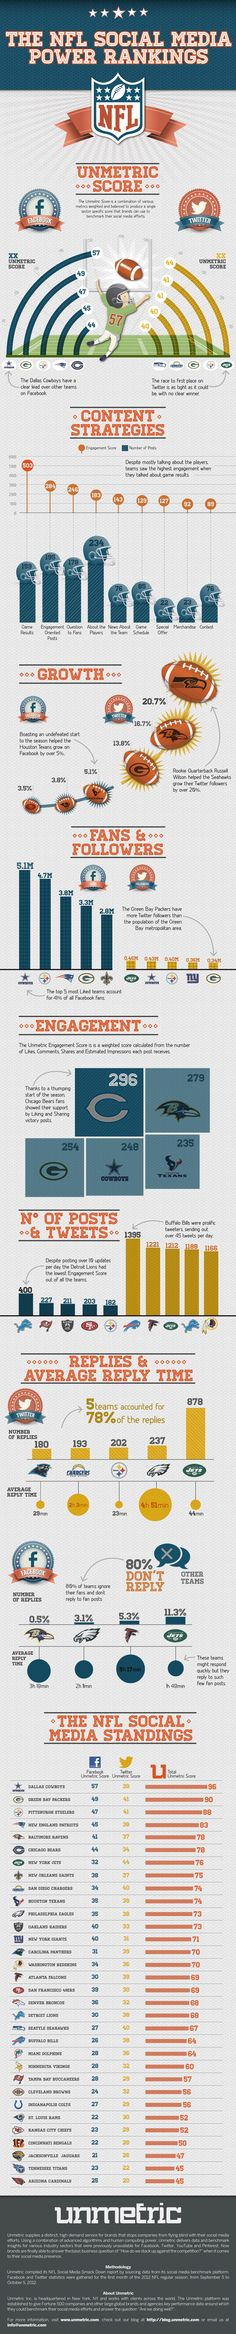 The NFL social media power rankings! This infographic looks at how NFL teams are doing on social media. Dallas Cowboys rule the roost, but Green Bay Packers punching well above their weight, just like on the field.